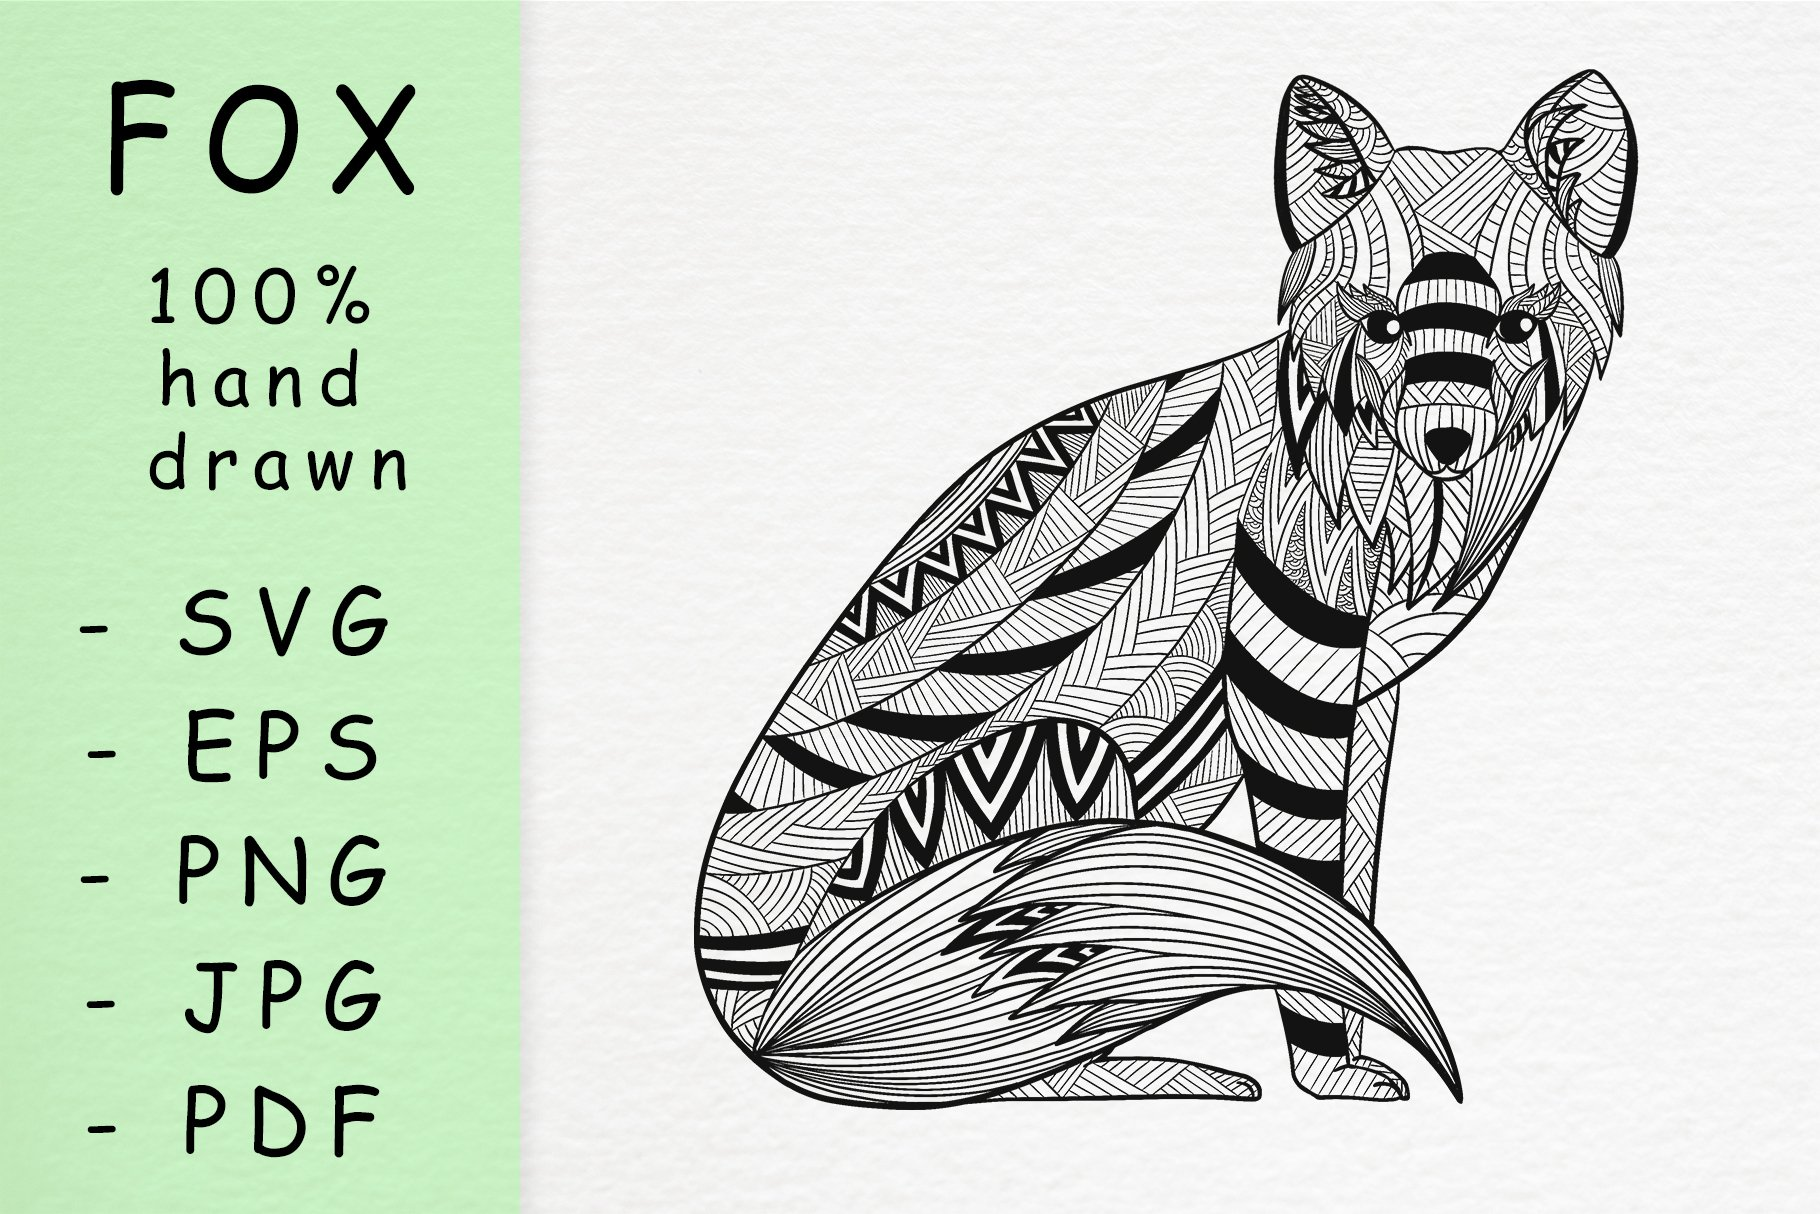 Hand drawn Fox head with patterns example image 1